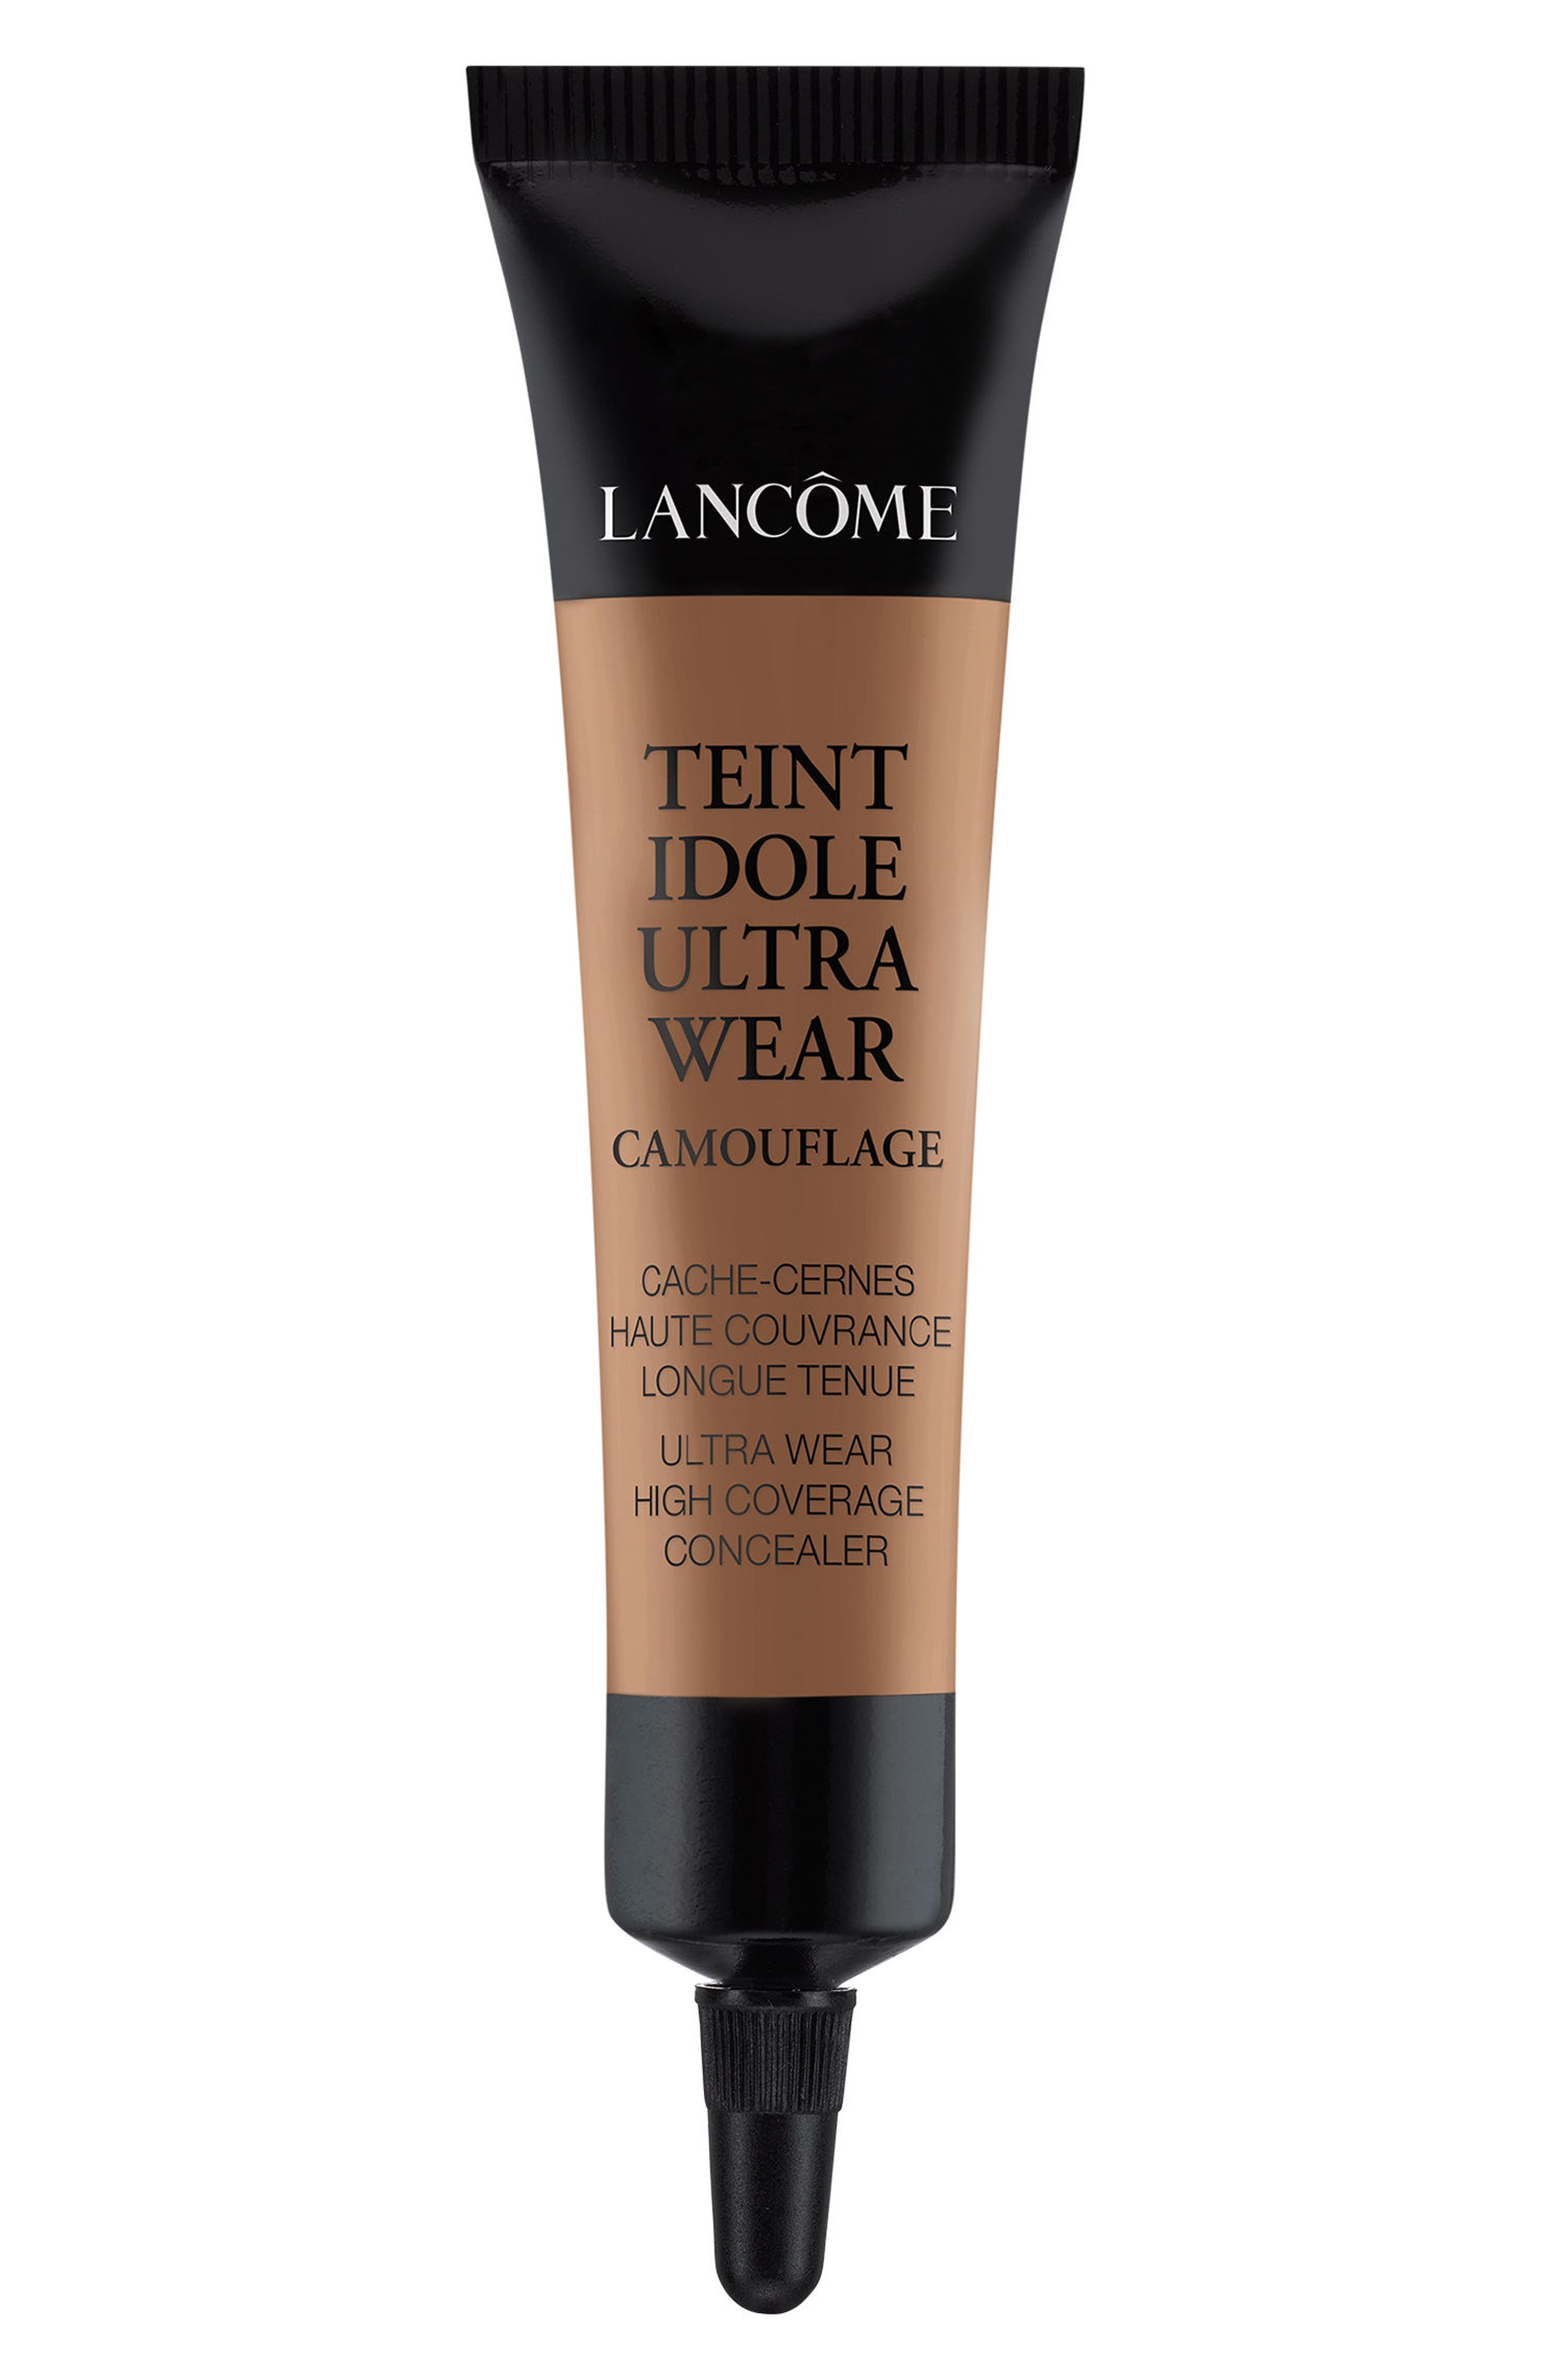 Teint Idole Ultra Wear Camouflage Concealer,                             Main thumbnail 1, color,                             420 BIQUE N